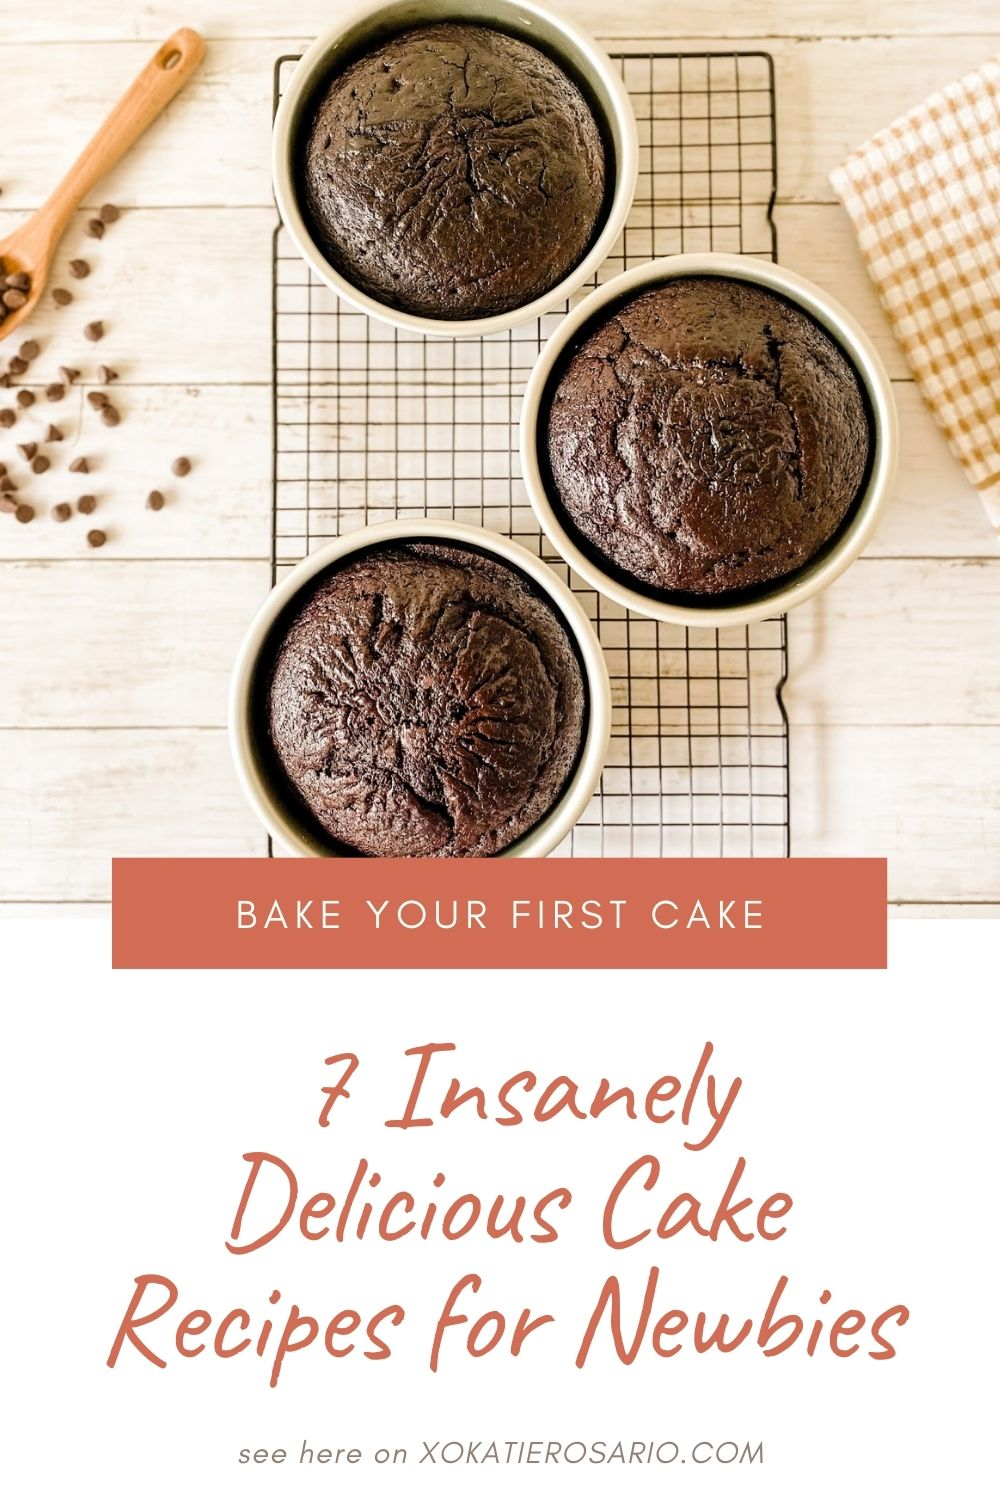 Ready to bake your first cake? These seven beginner-friendly cake recipes are insanely delicious. These light and fluffy cake recipes are perfect for beginners. Created by Katie Rosario, XOKatieRosario creates beautiful cake decorating techniques that are easy for beginners and strategically designed for any home baker. #xokatierosario #katierosaiocakes #lemoncake #buttermilkcake #cakerecipes #cakedecoratingcourse #homebakingcourse